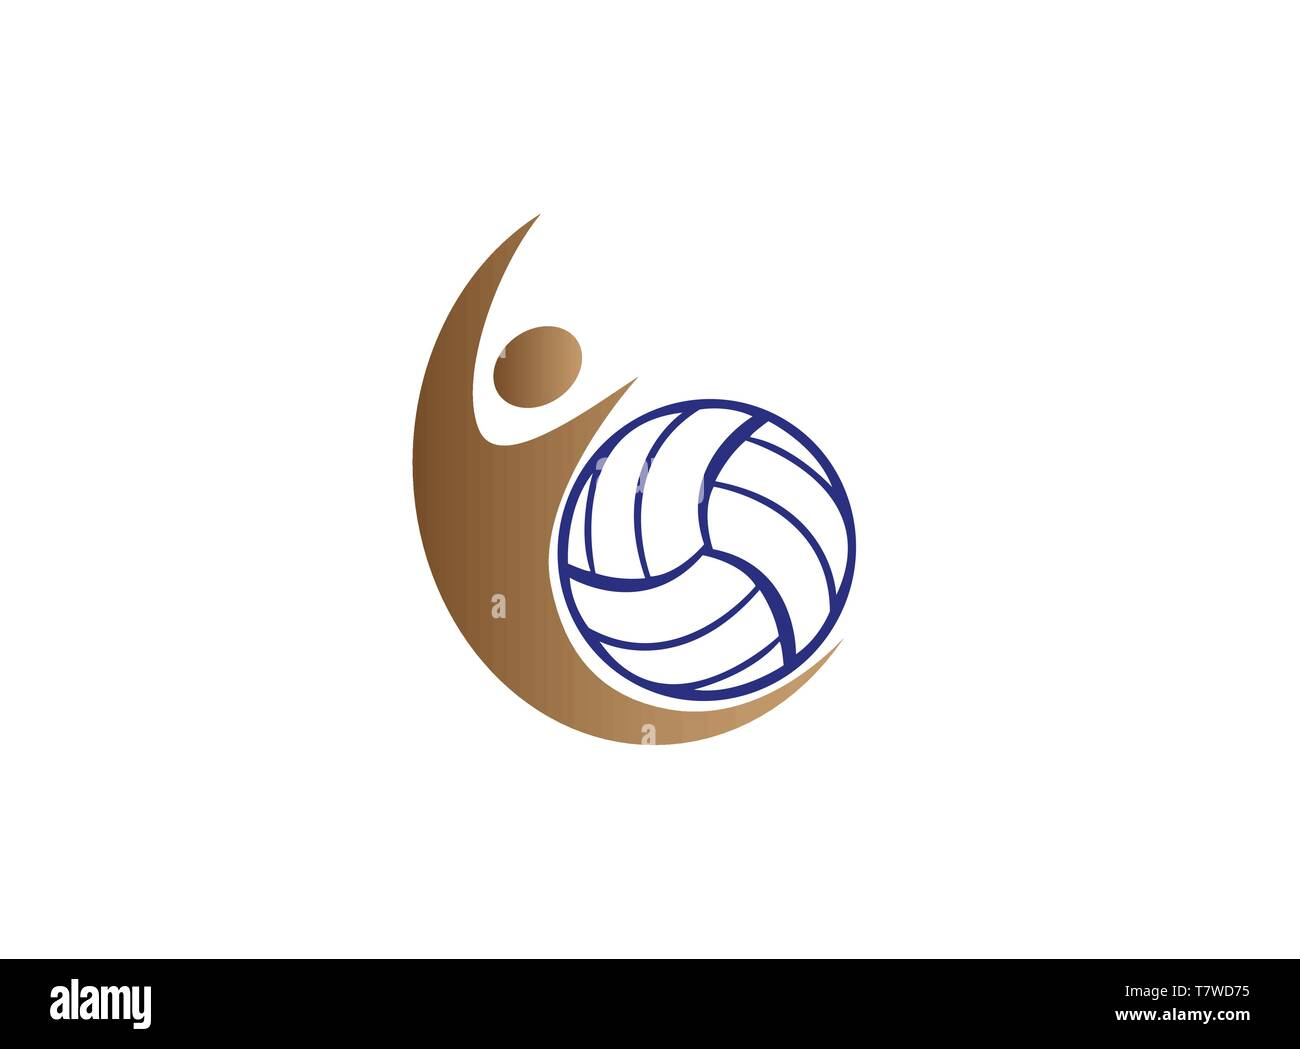 Volleyball Player Smash And Serving Ball For Logo Design Stock Vector Image Art Alamy